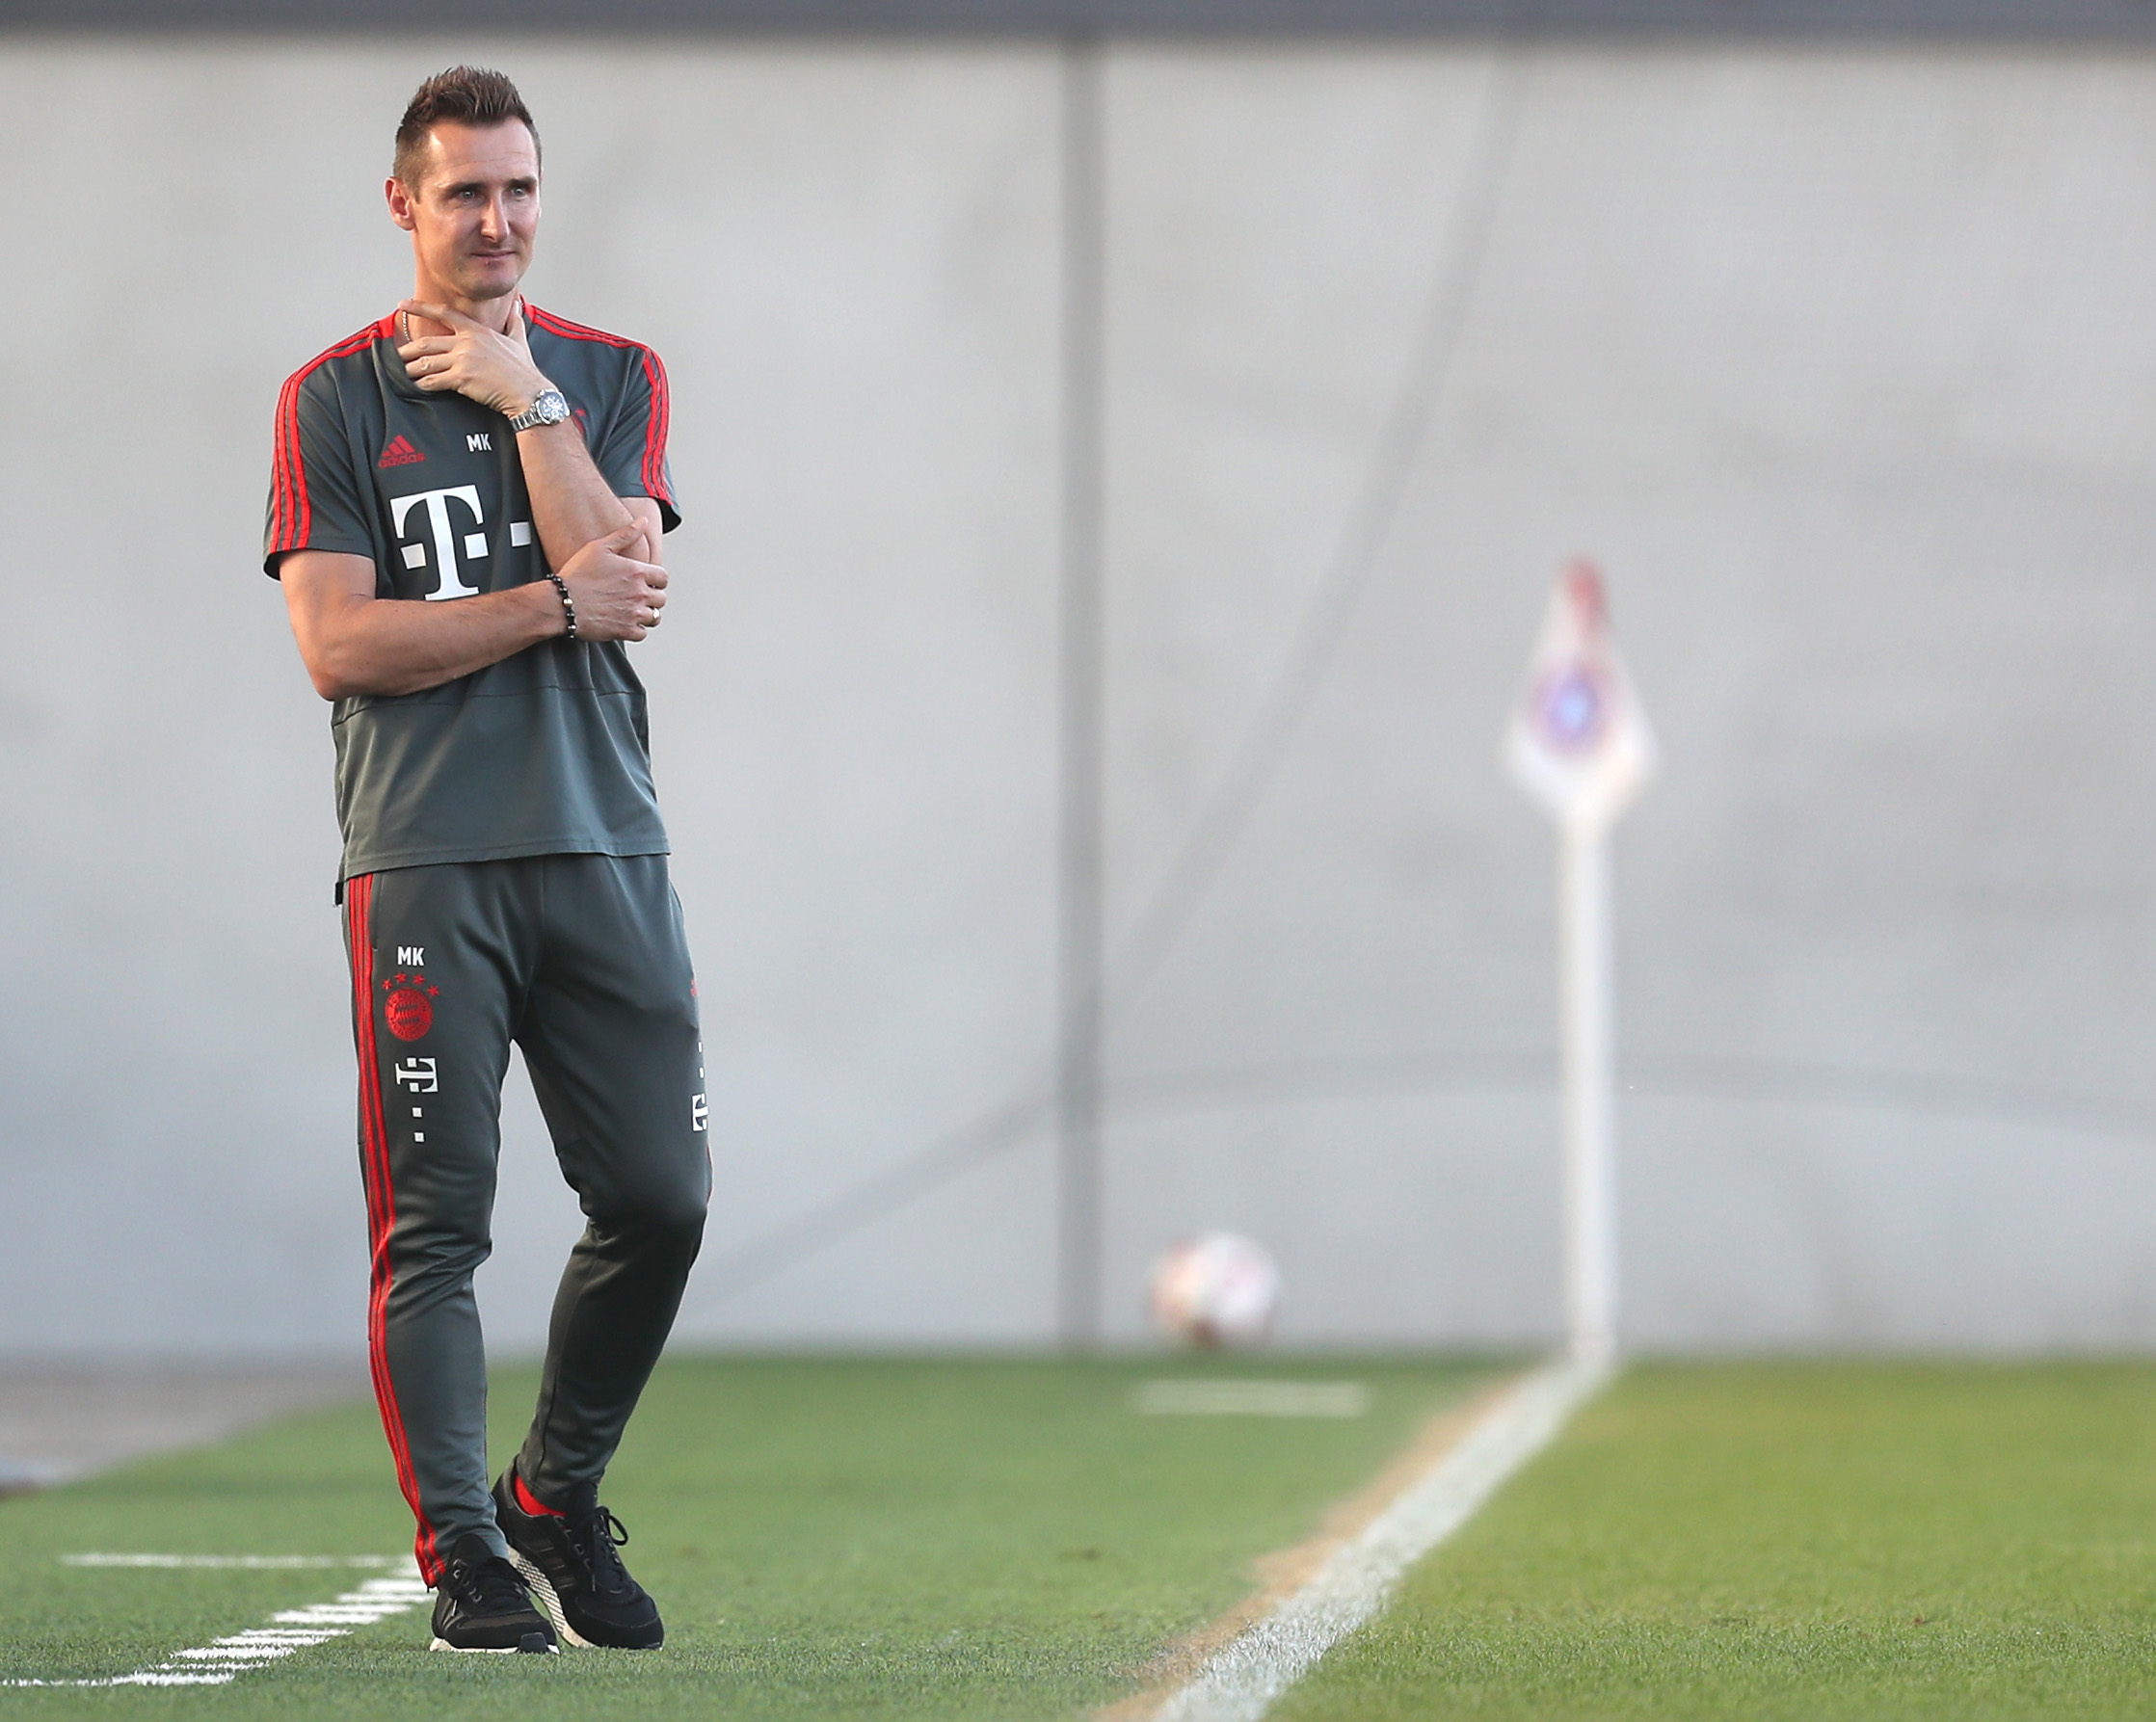 MUNICH, GERMANY - JUNE 05: Team coach Miroslav Klose of FC Bayern Muenchen U17 is pictured during the B Juniors German Championship semi final leg one match between FC Bayern Muenchen U17 and 1. FC Koeln U17 at FCB Campus on June 05, 2019 in Munich, Germany. (Photo by Alexandra Beier/Getty Images for DFB)